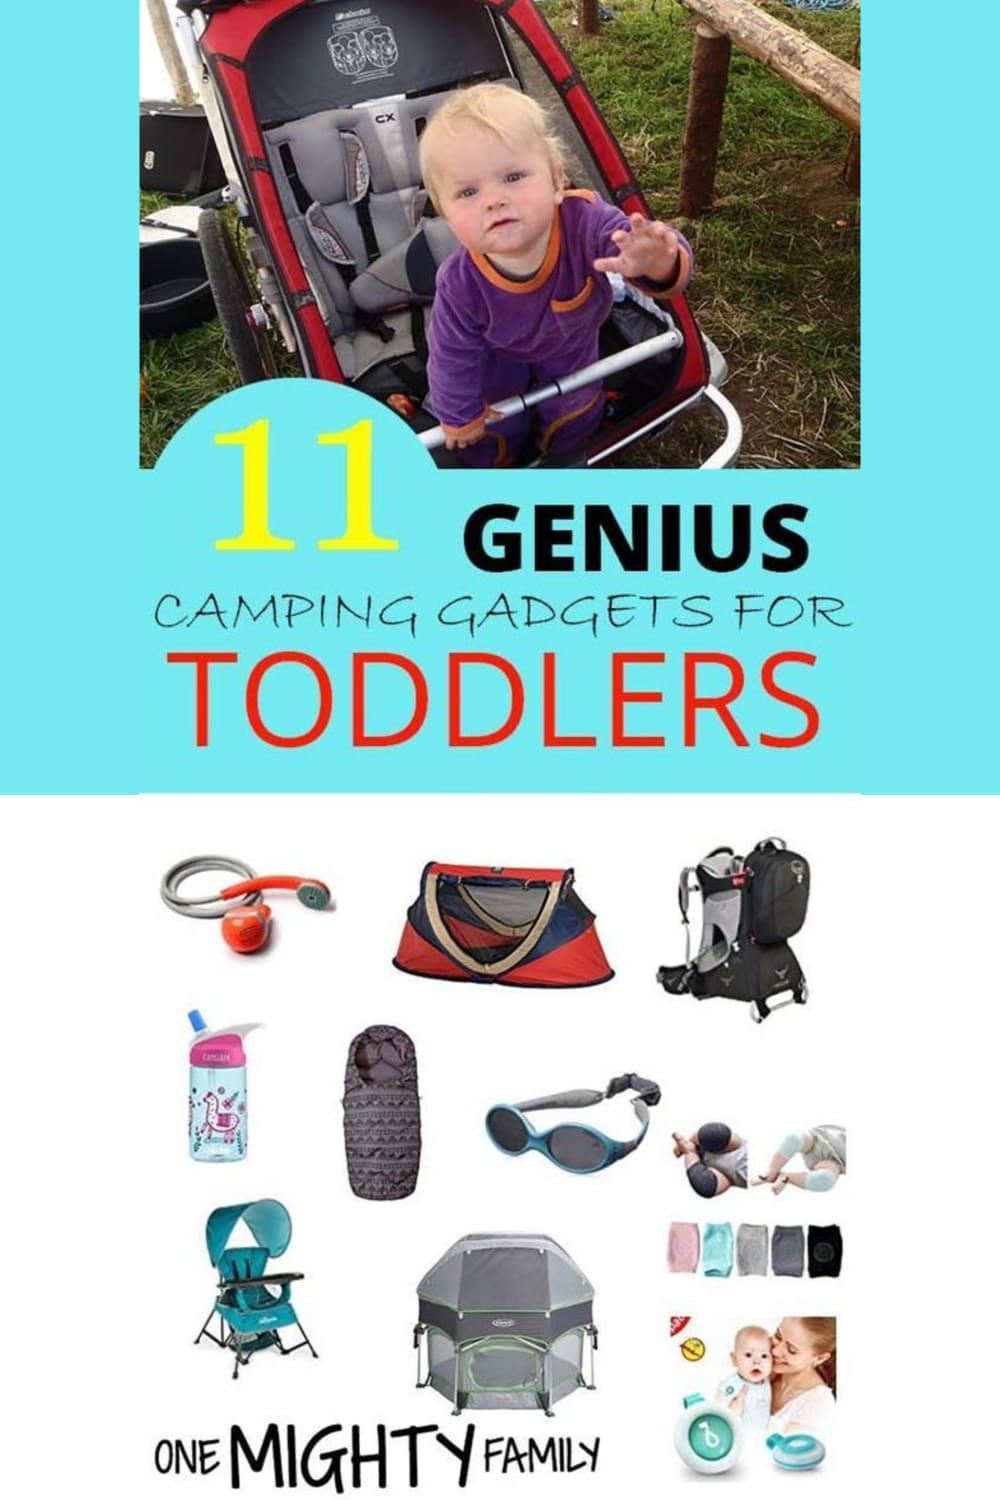 picture of a toddler in a chariot stroler - with pictures of other genius gadgets for toddlers and babies when you go camping